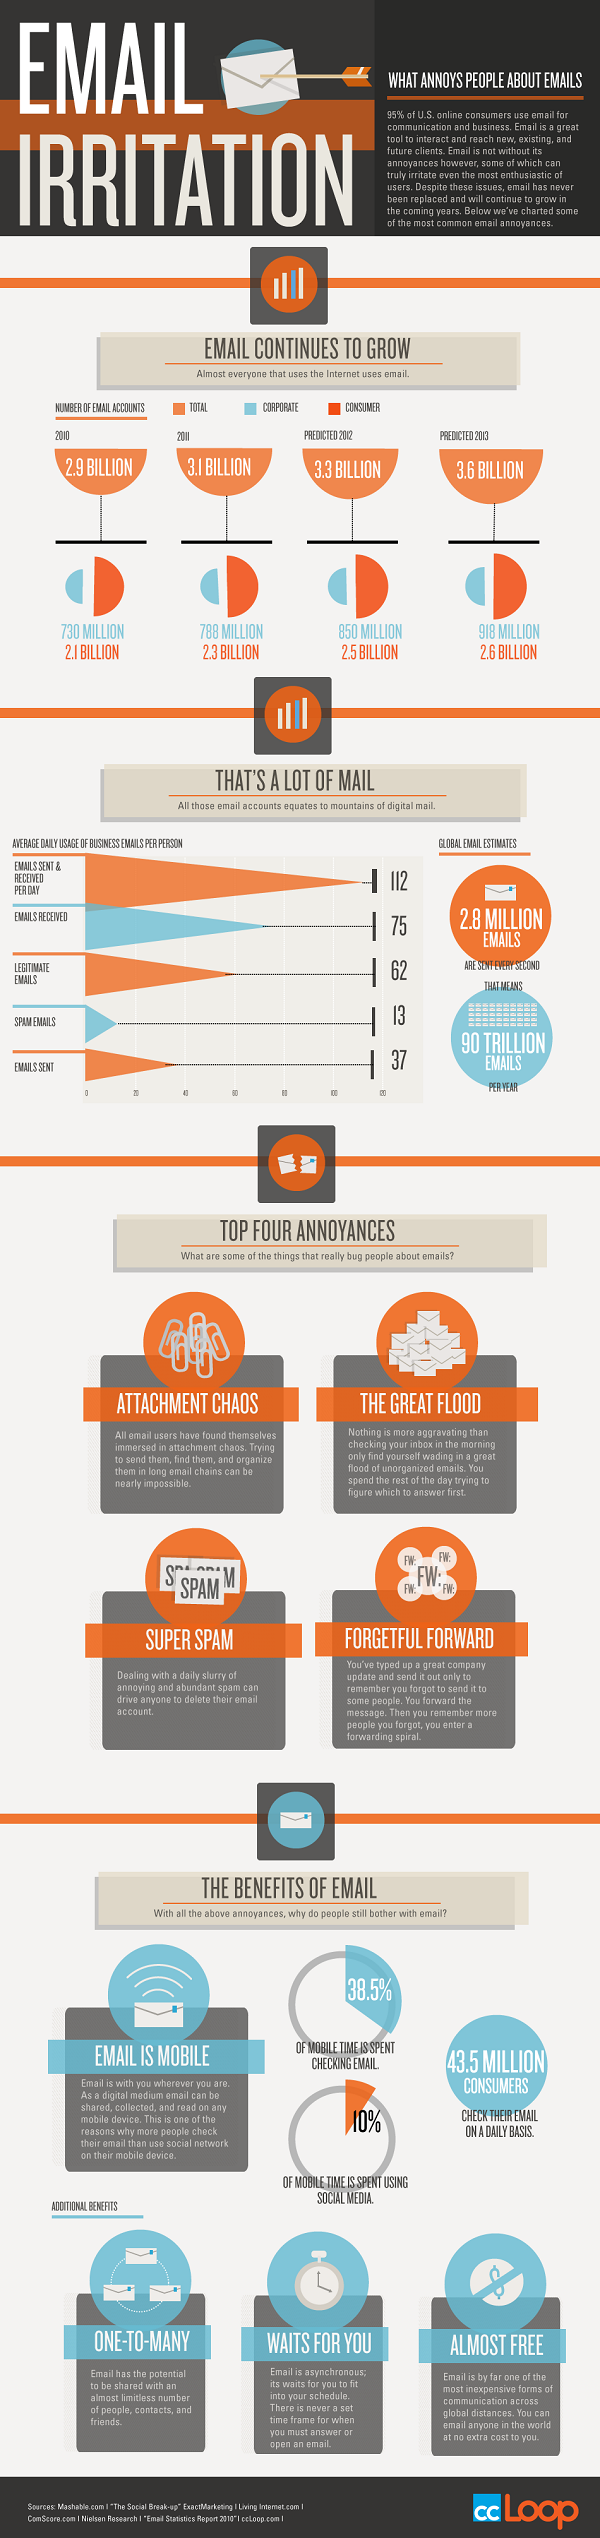 CCLoop: Top Email Irritations - What Annoys Us About Email